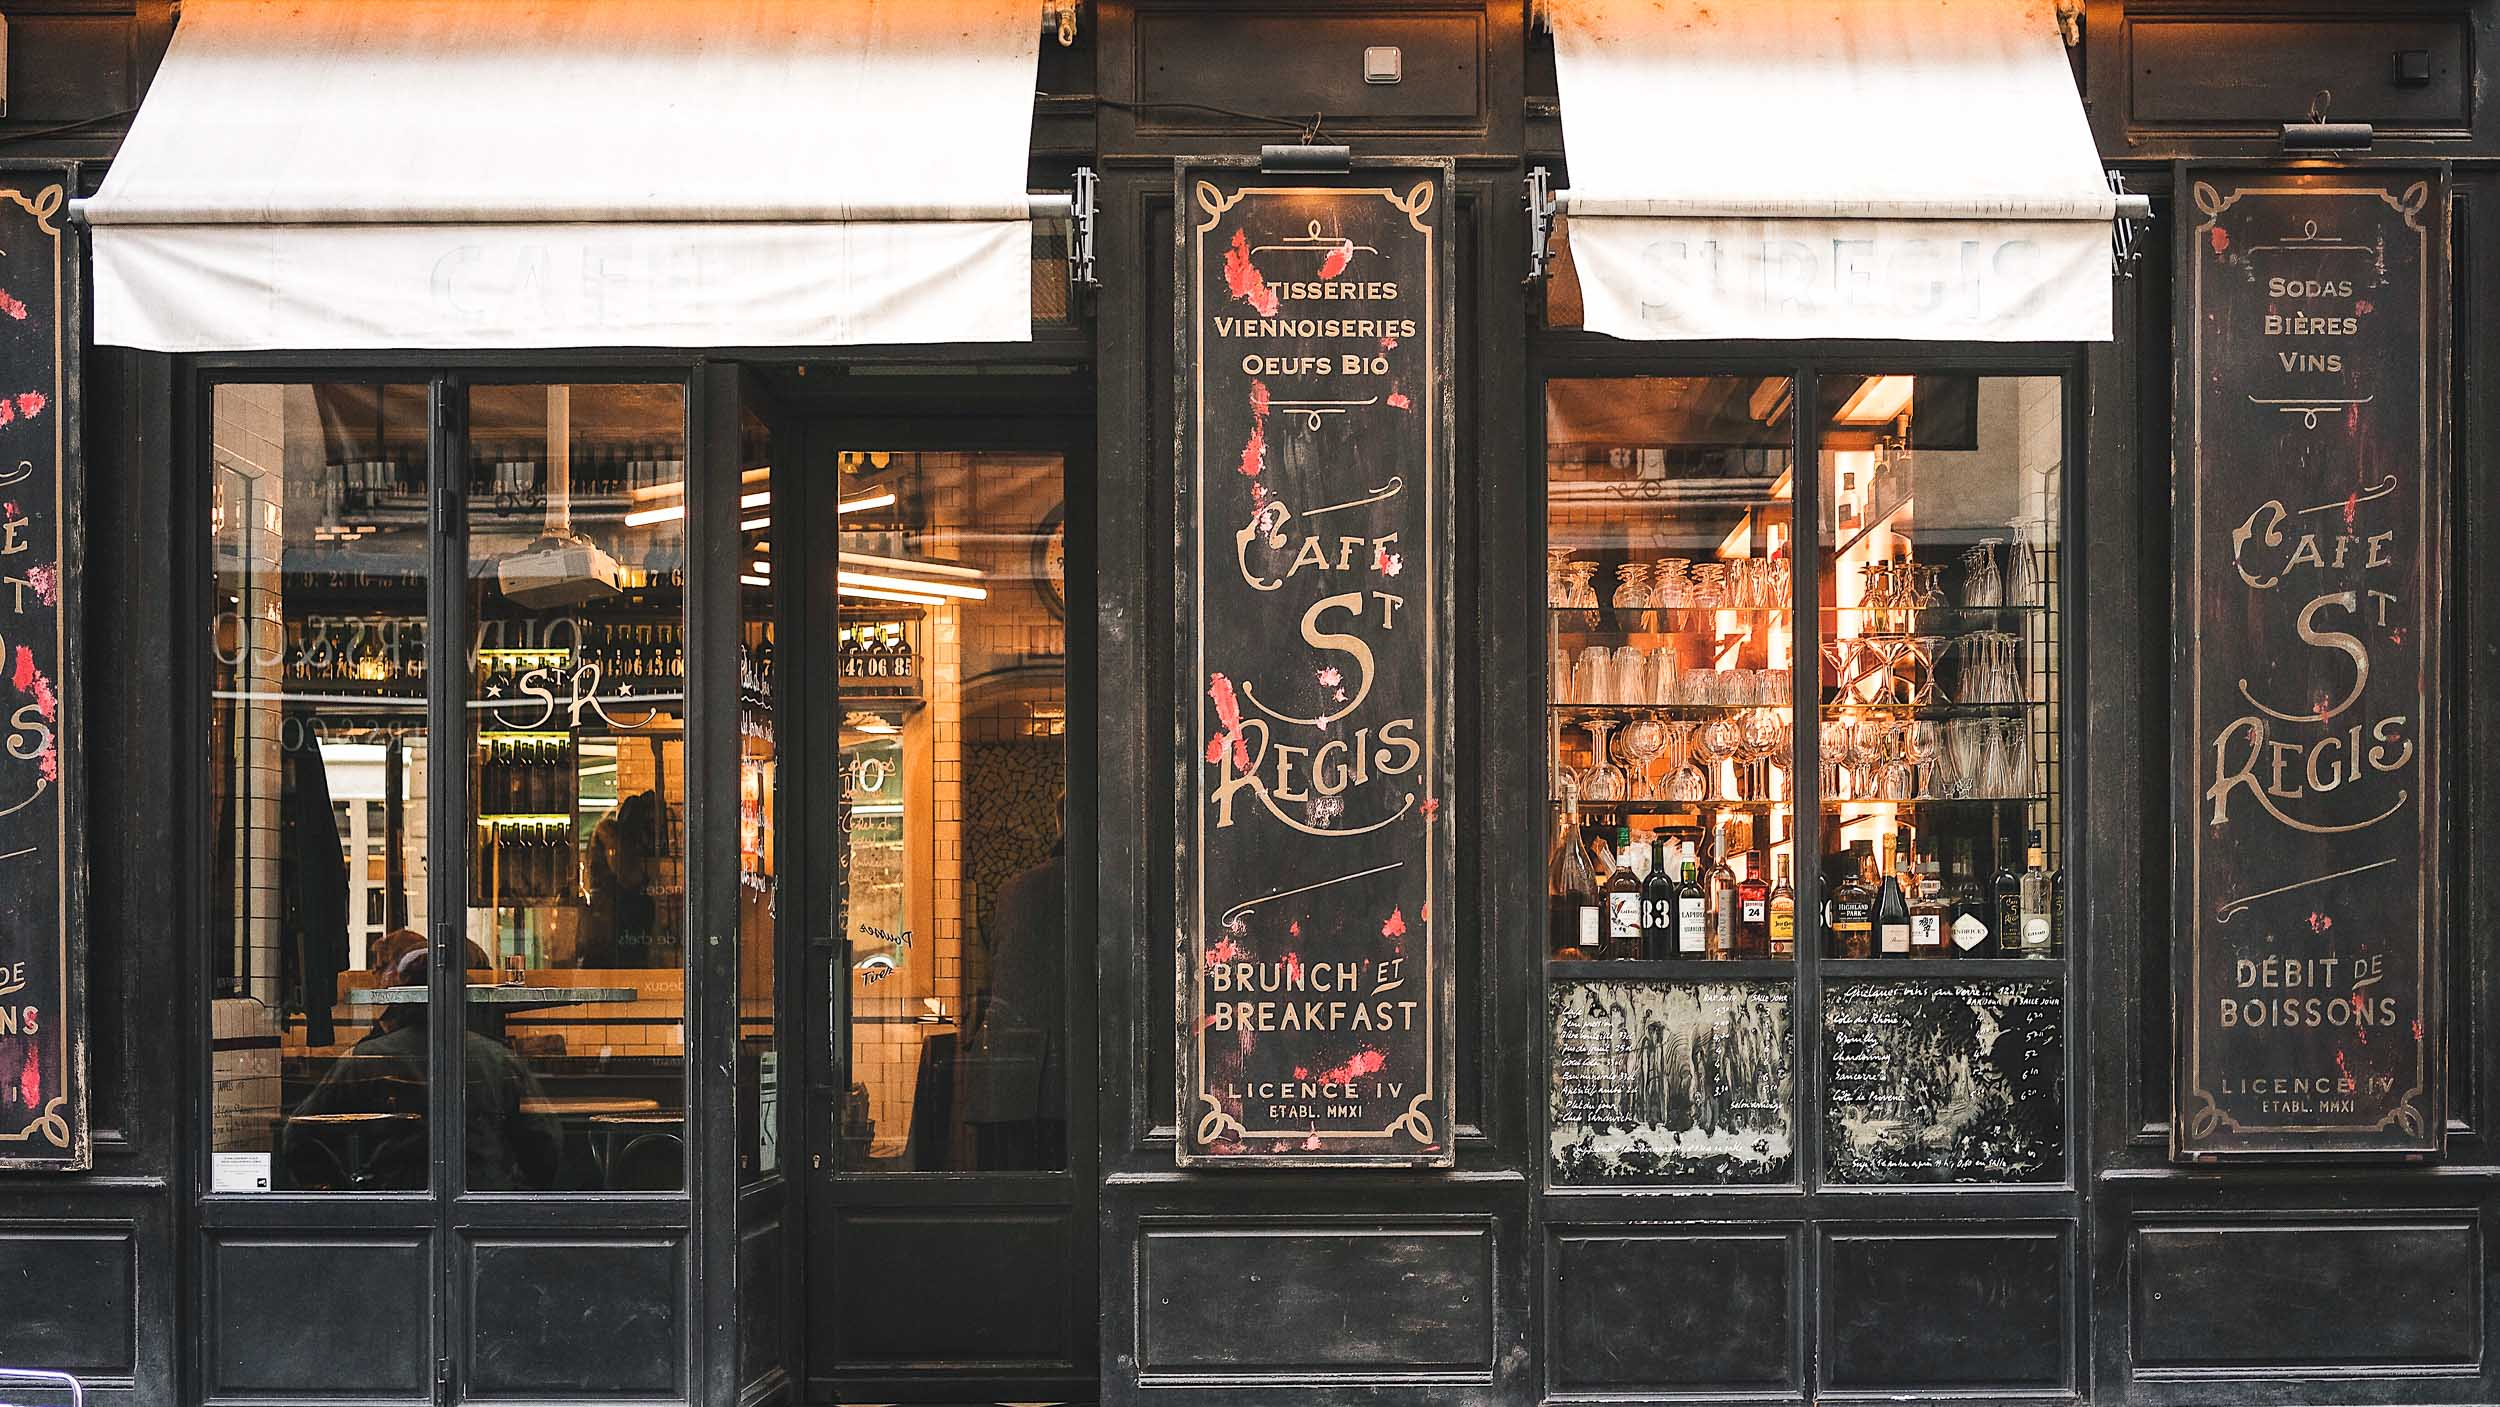 The Best Paris Food: What to Eat and Where to Eat it